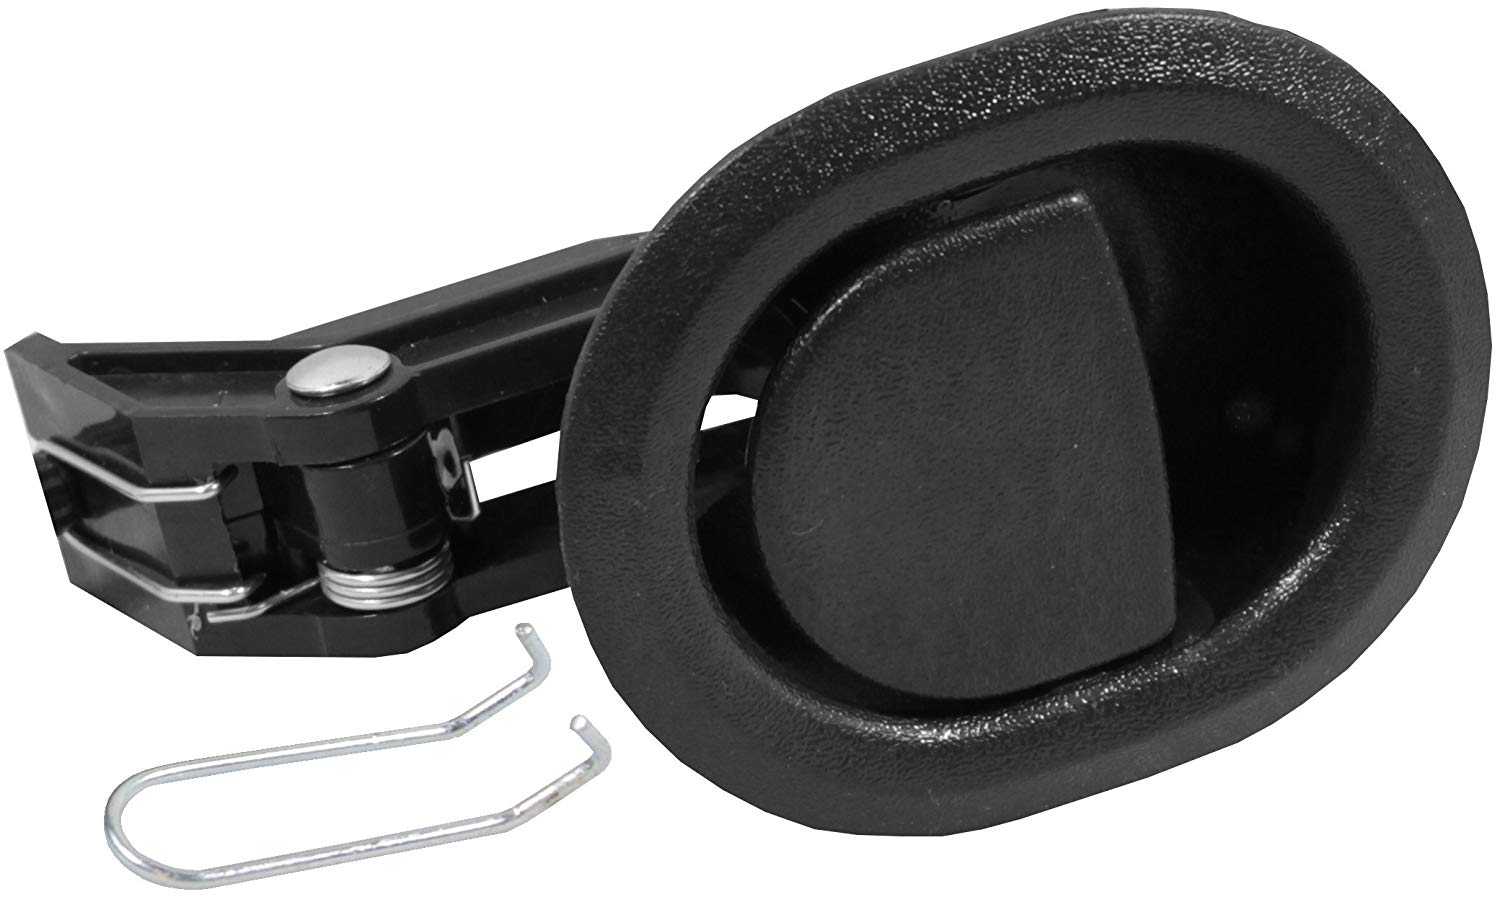 "Reliable Recliner Replacement Parts ★ HANDLE COMES WITH CABLE HOOK ★ Small Oval Black Plastic Pull Recliner Handle 3"" by 3.5"" fits Ashley and Other Manufacturer Brands. Handle Only - Fits both 3mm and 6mm Cables (Car Door Flapper Style) Chair Release Hand"